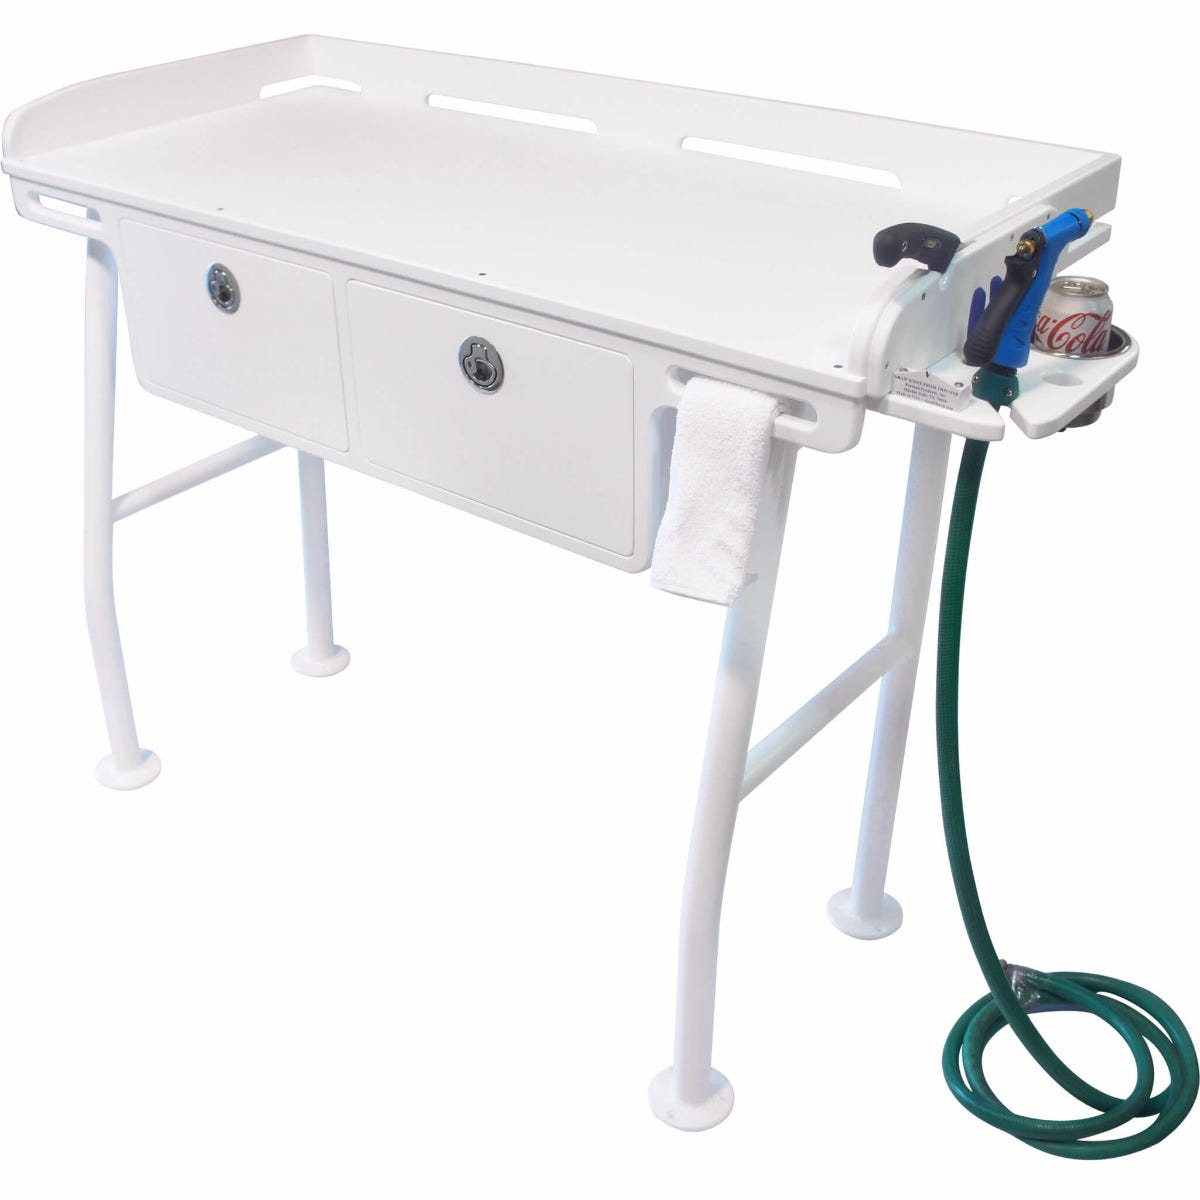 Fish Cleaning Table Fish Table Folding Hunting Cleaning